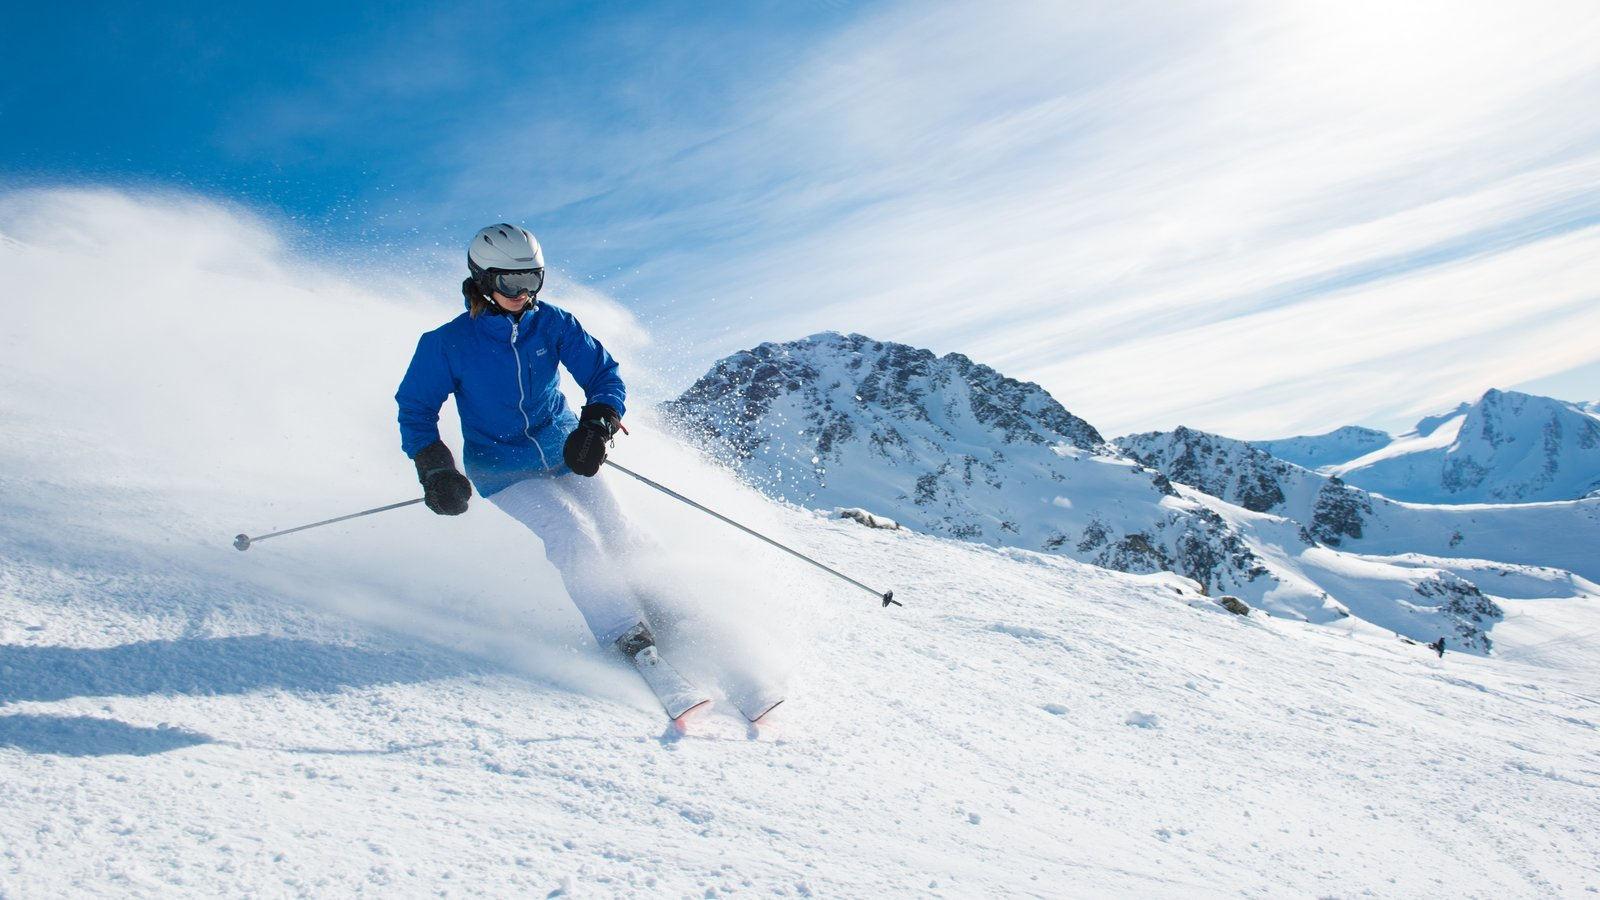 Whistler Blackcomb Ski Resort showing snow skiing and snow as well as an individual femail